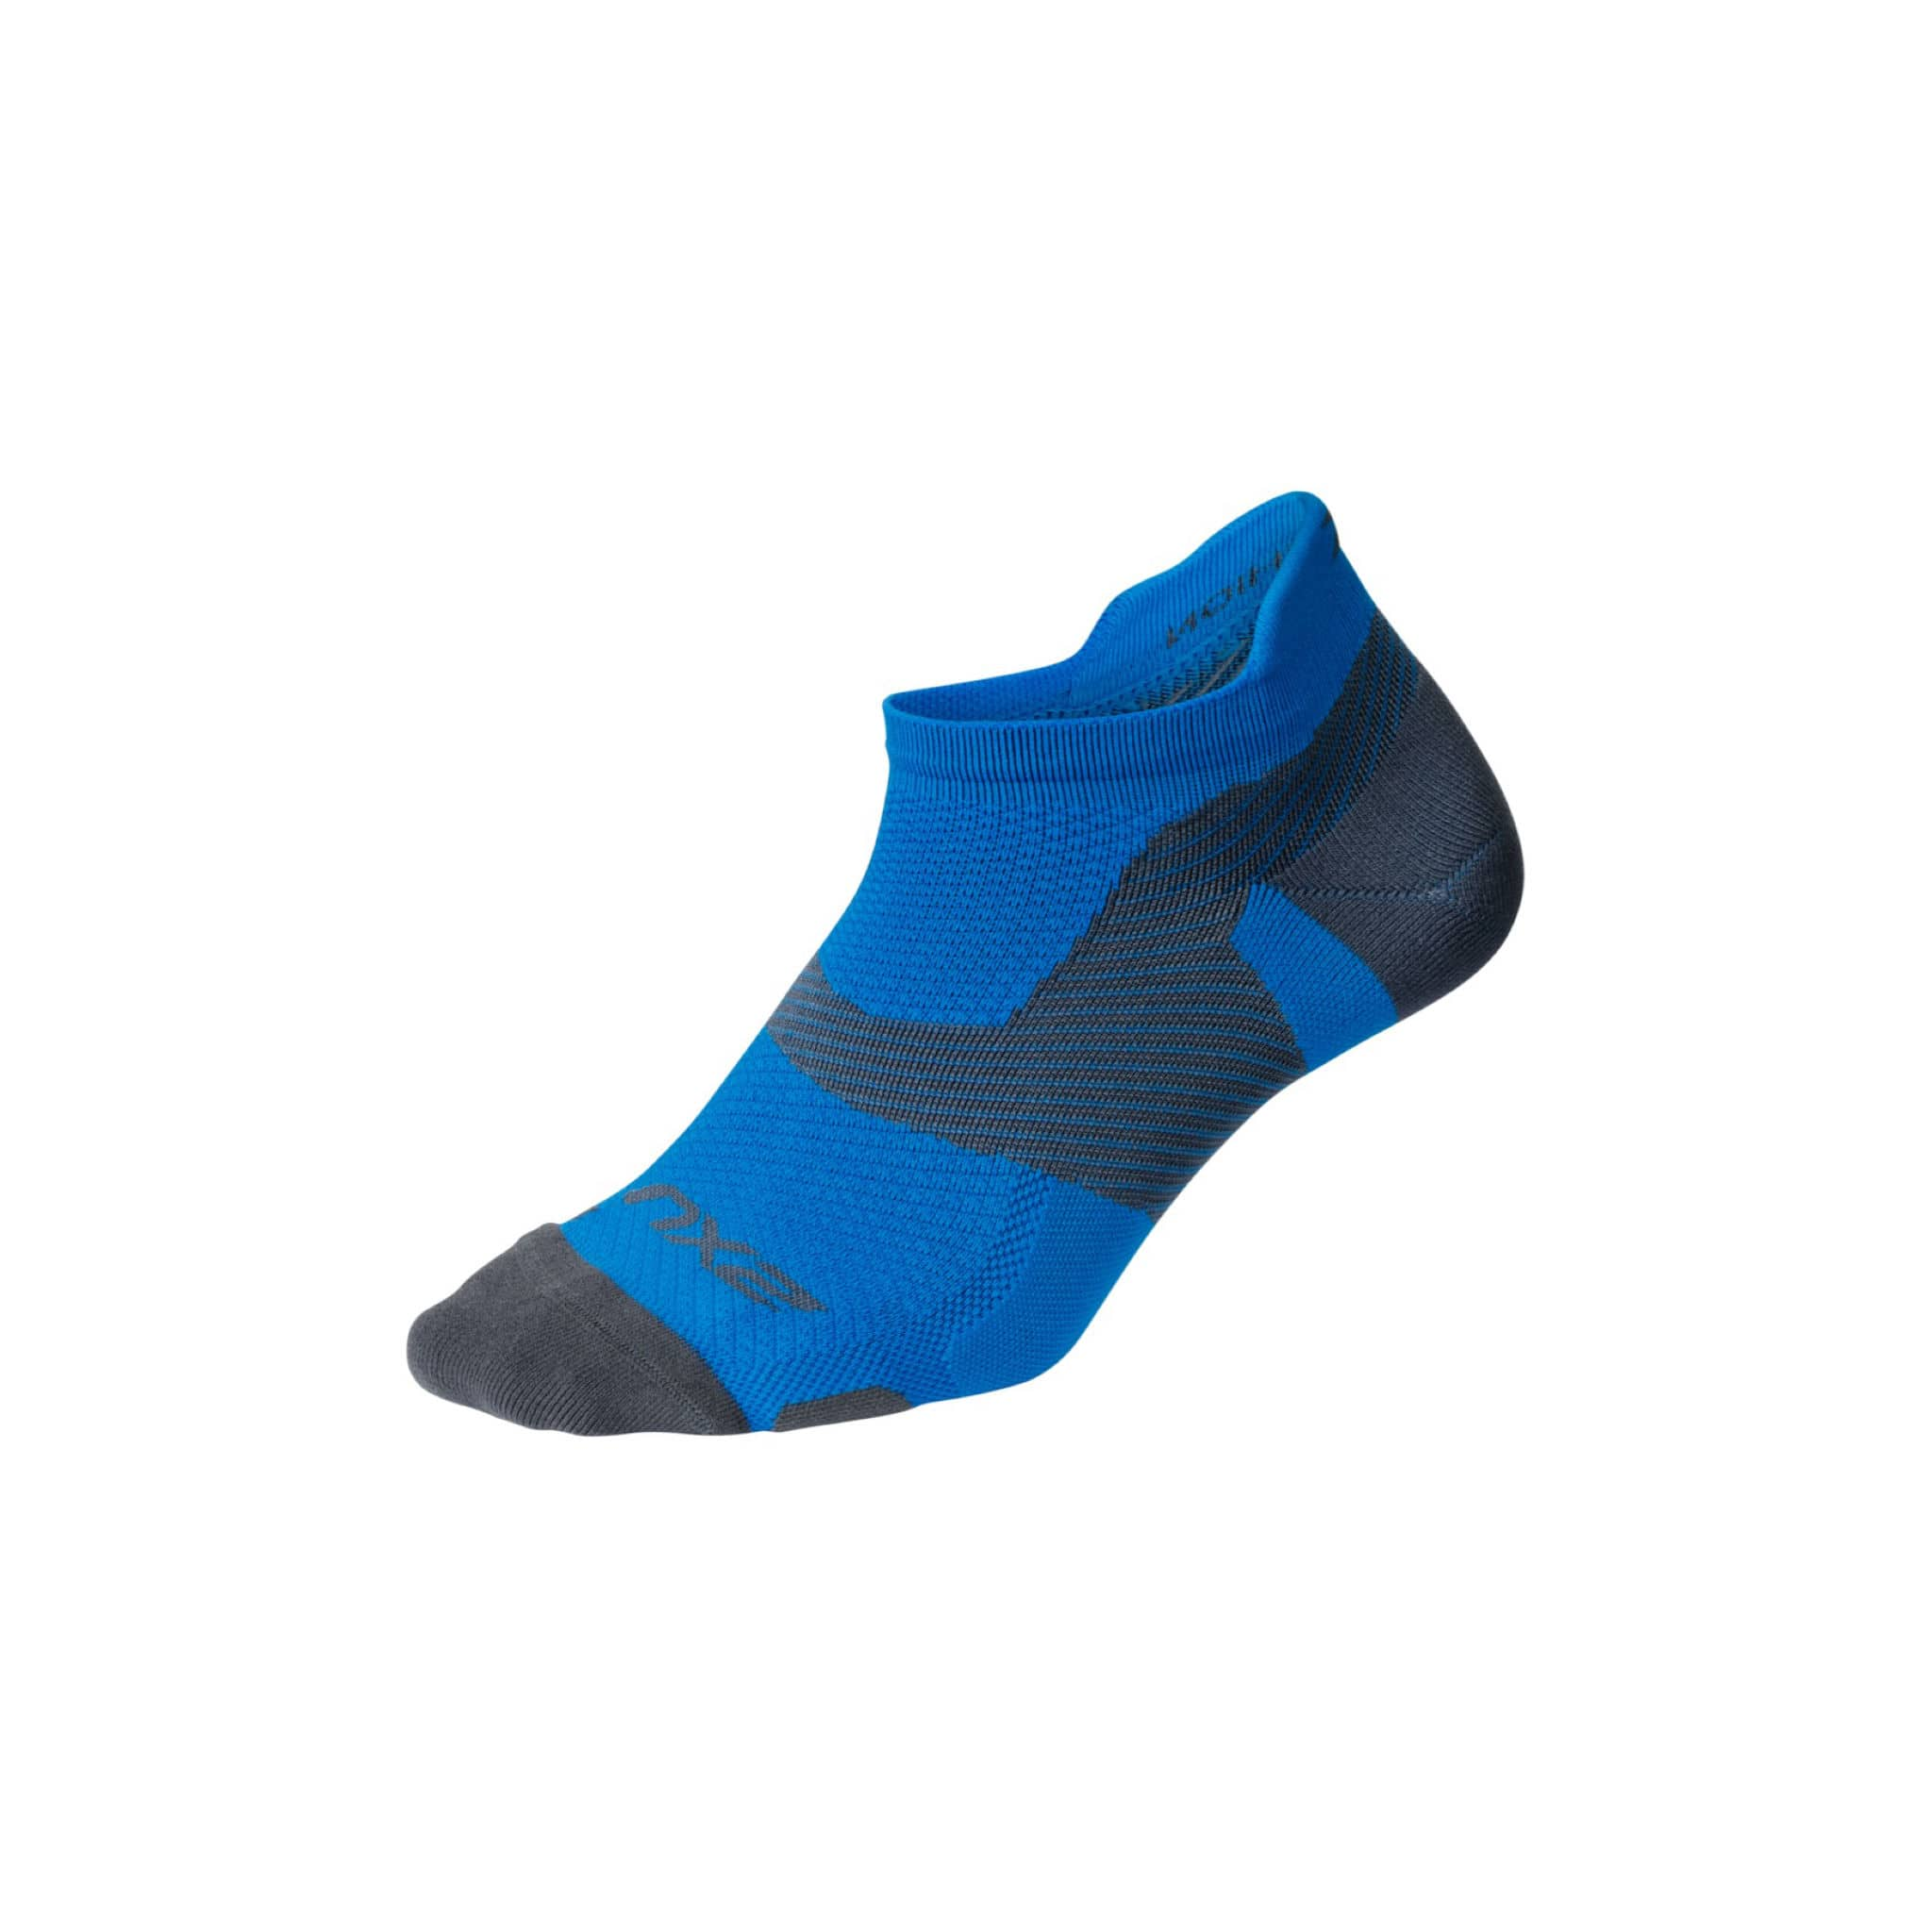 Vectr Light Cushion No Show Socks